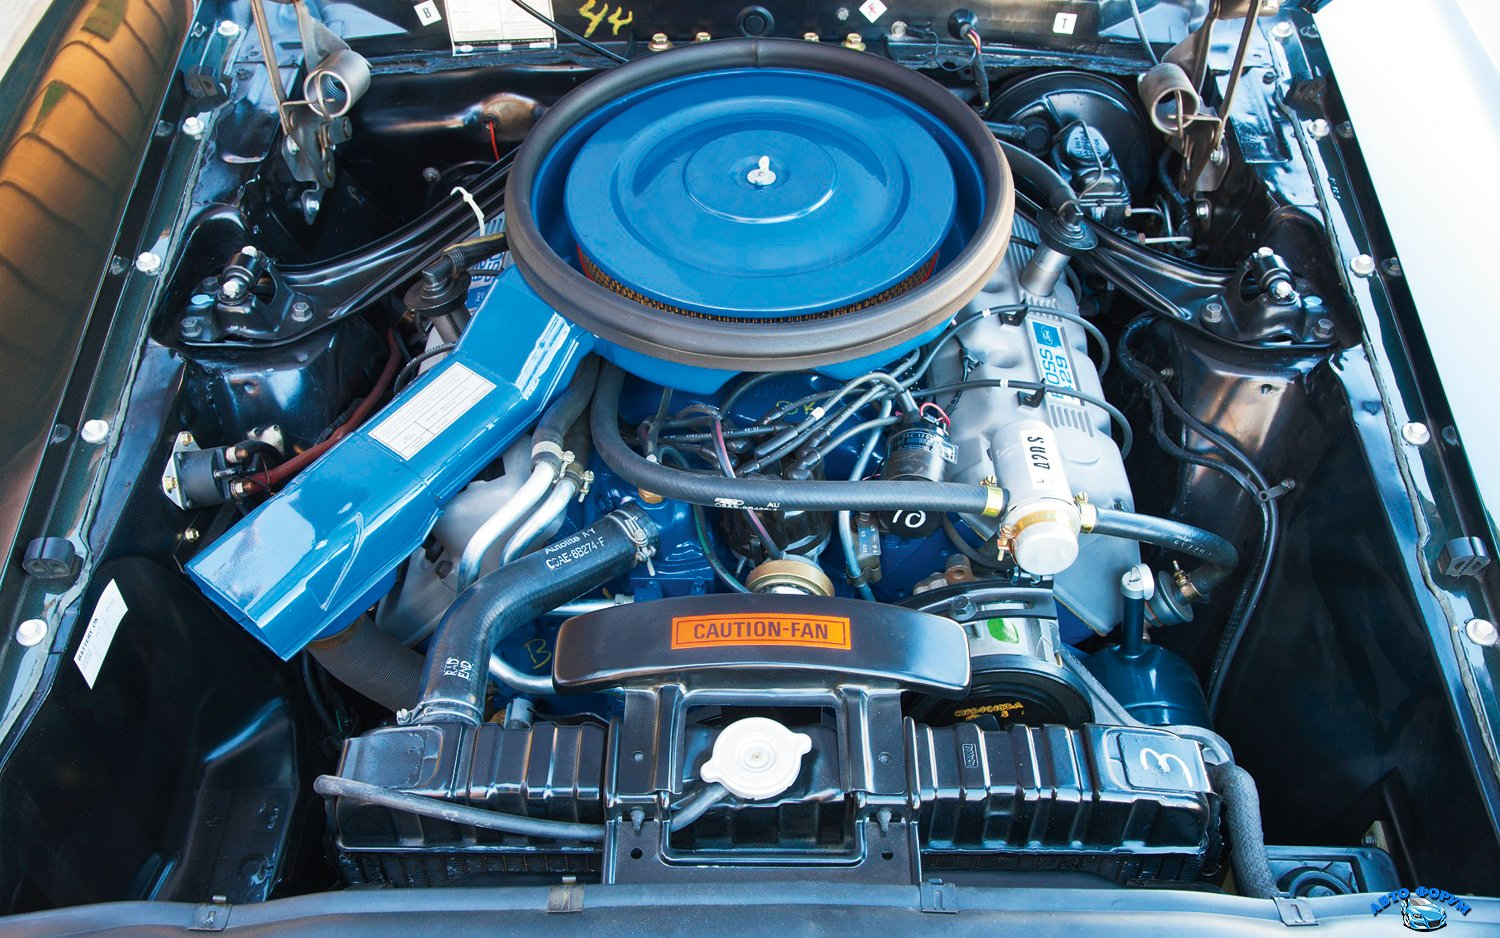 1969-ford-mustang-boss-429-engine.jpg